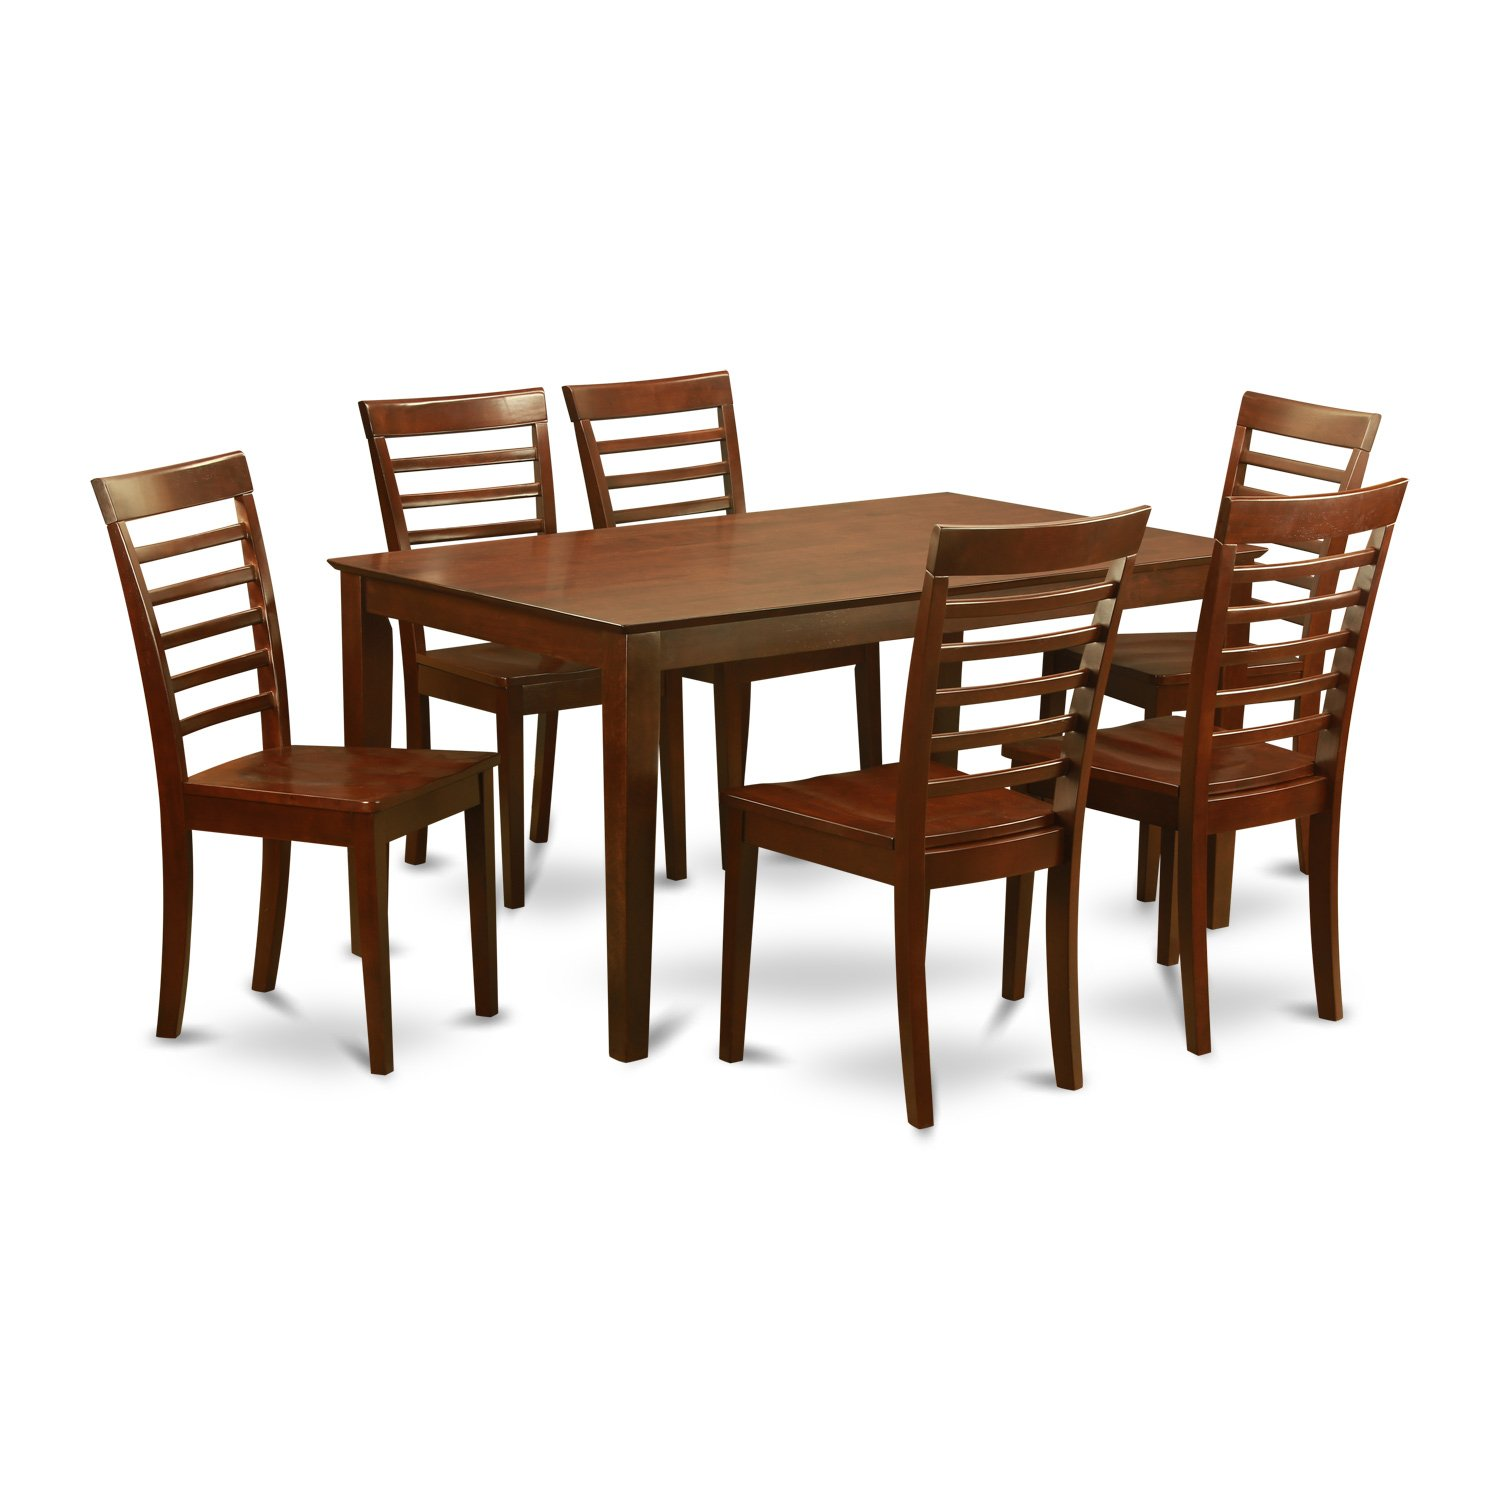 CAML7-MAH-W 7 PC Dining room set – Table and 6 Kitchen Dining Chairs